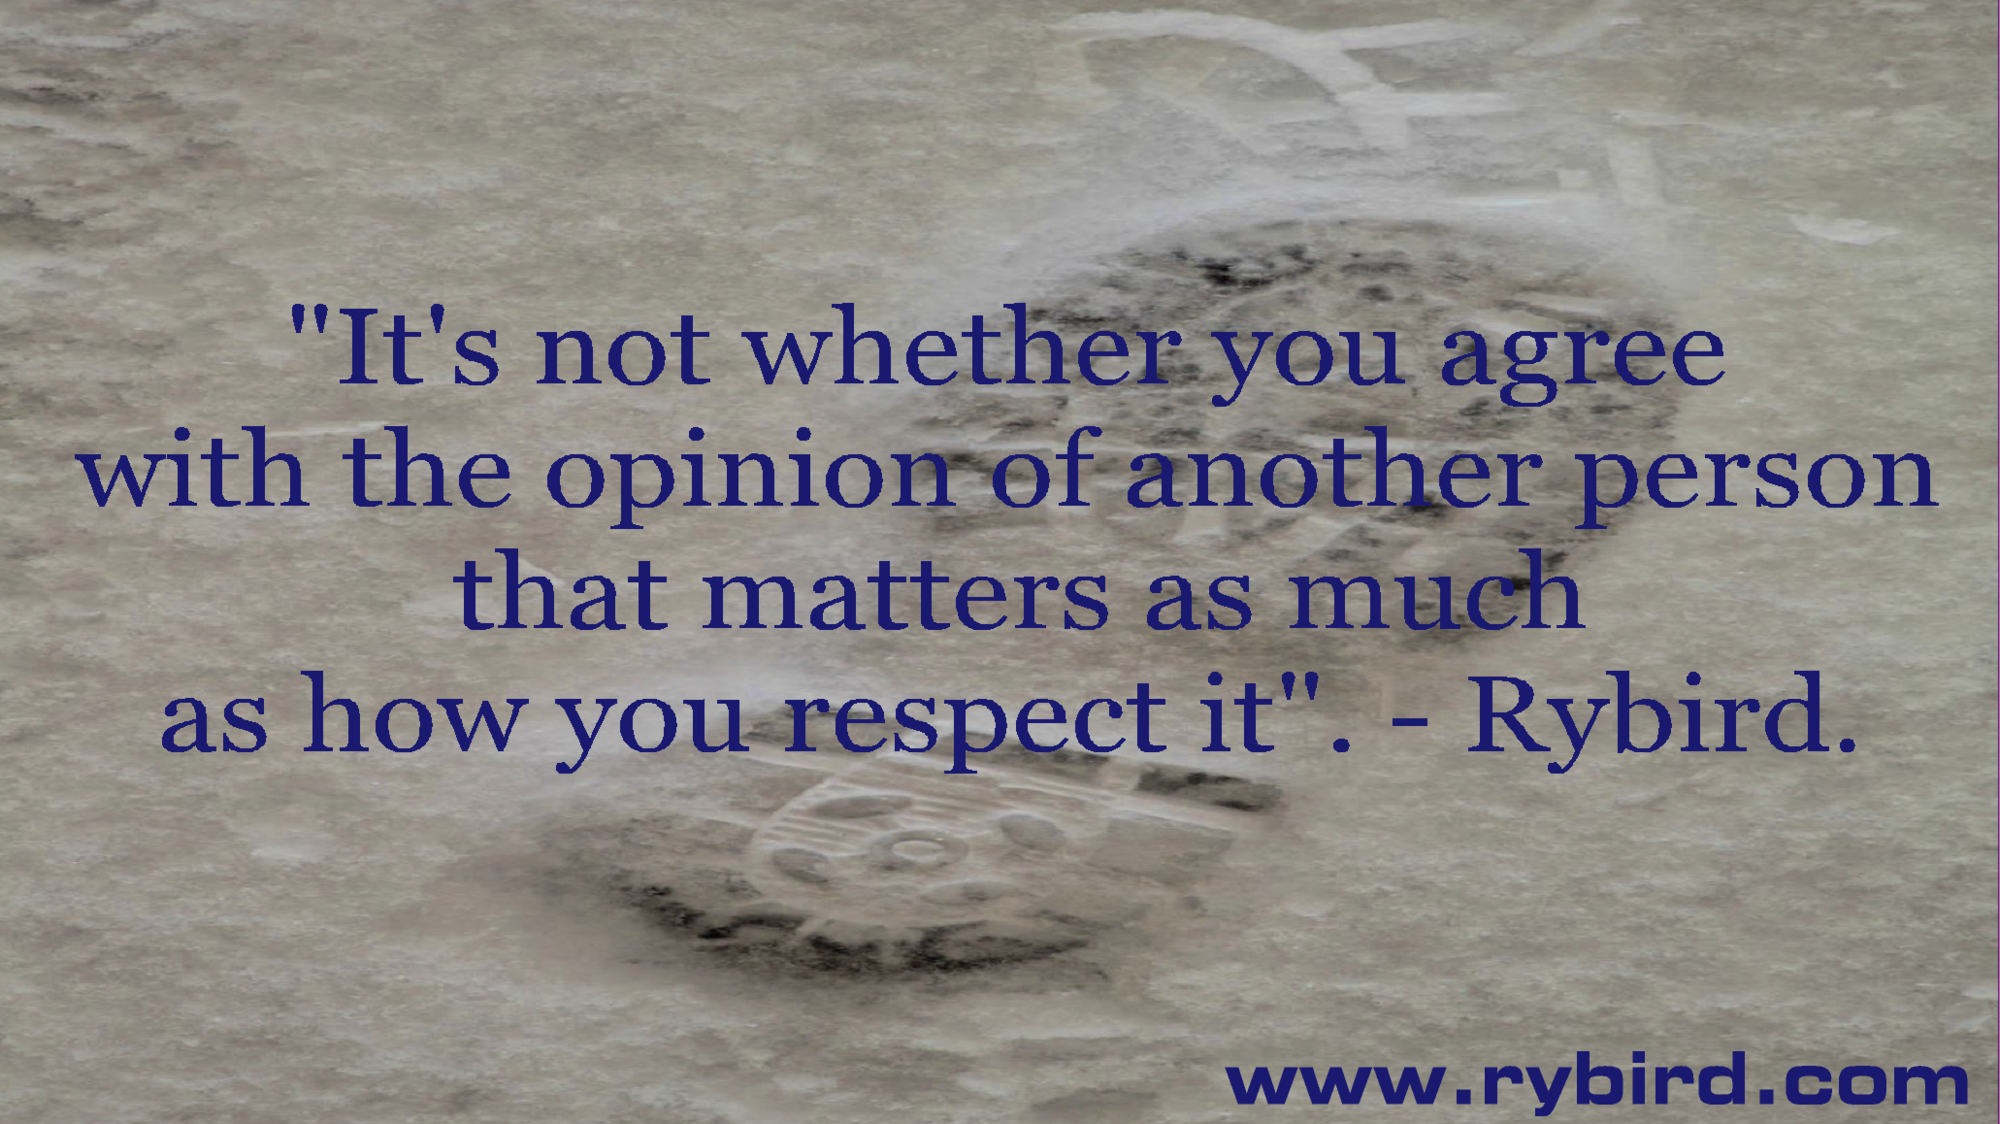 Quotes About Respecting Others Opinions. QuotesGram